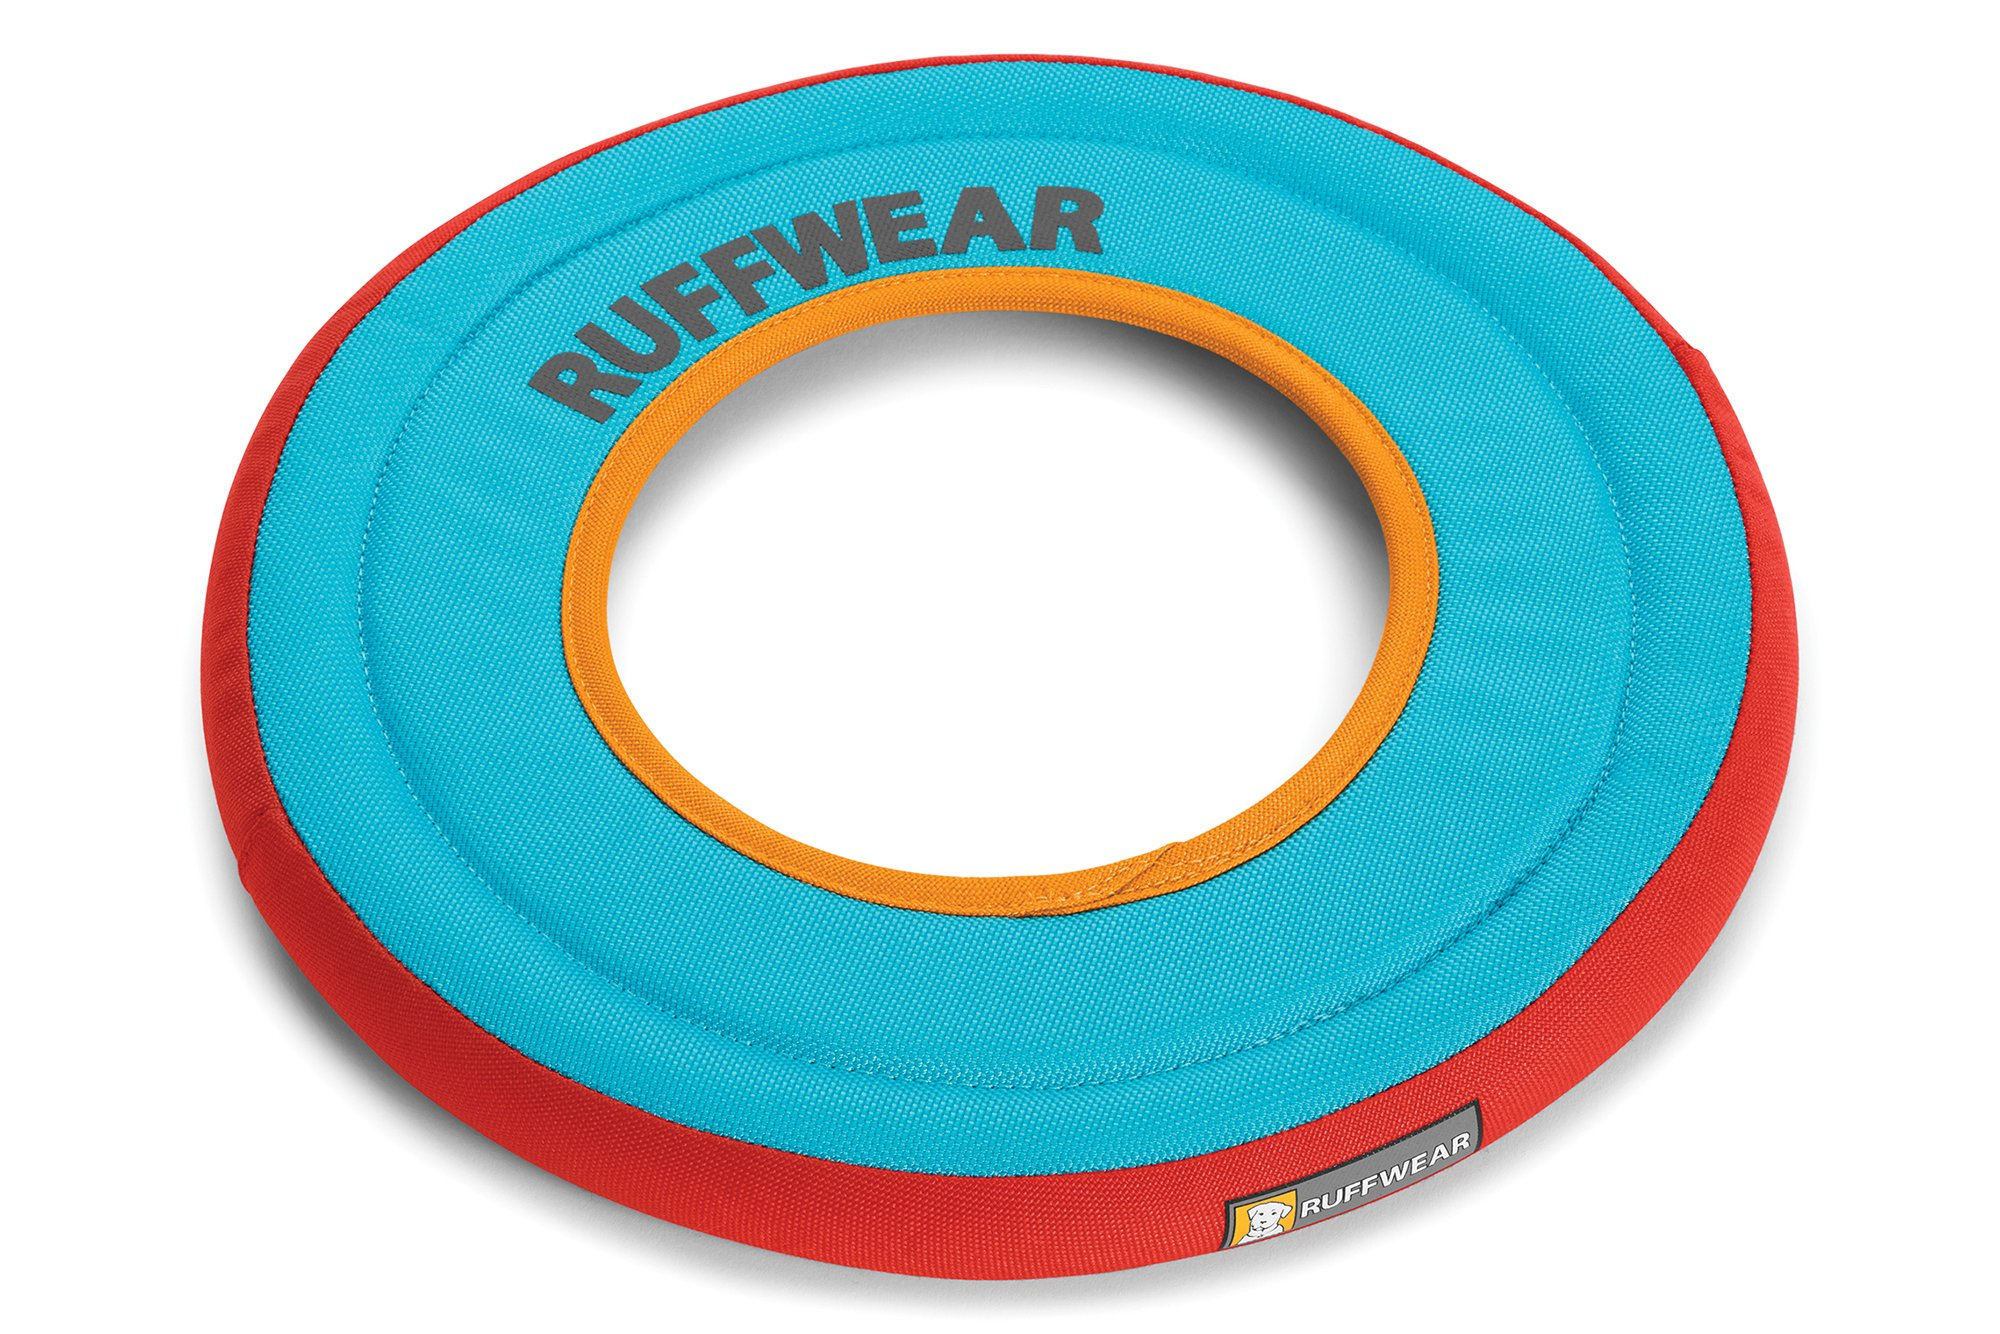 RUFFWEAR - Hydro Plane Floating Disc for Dogs, Blue Atoll